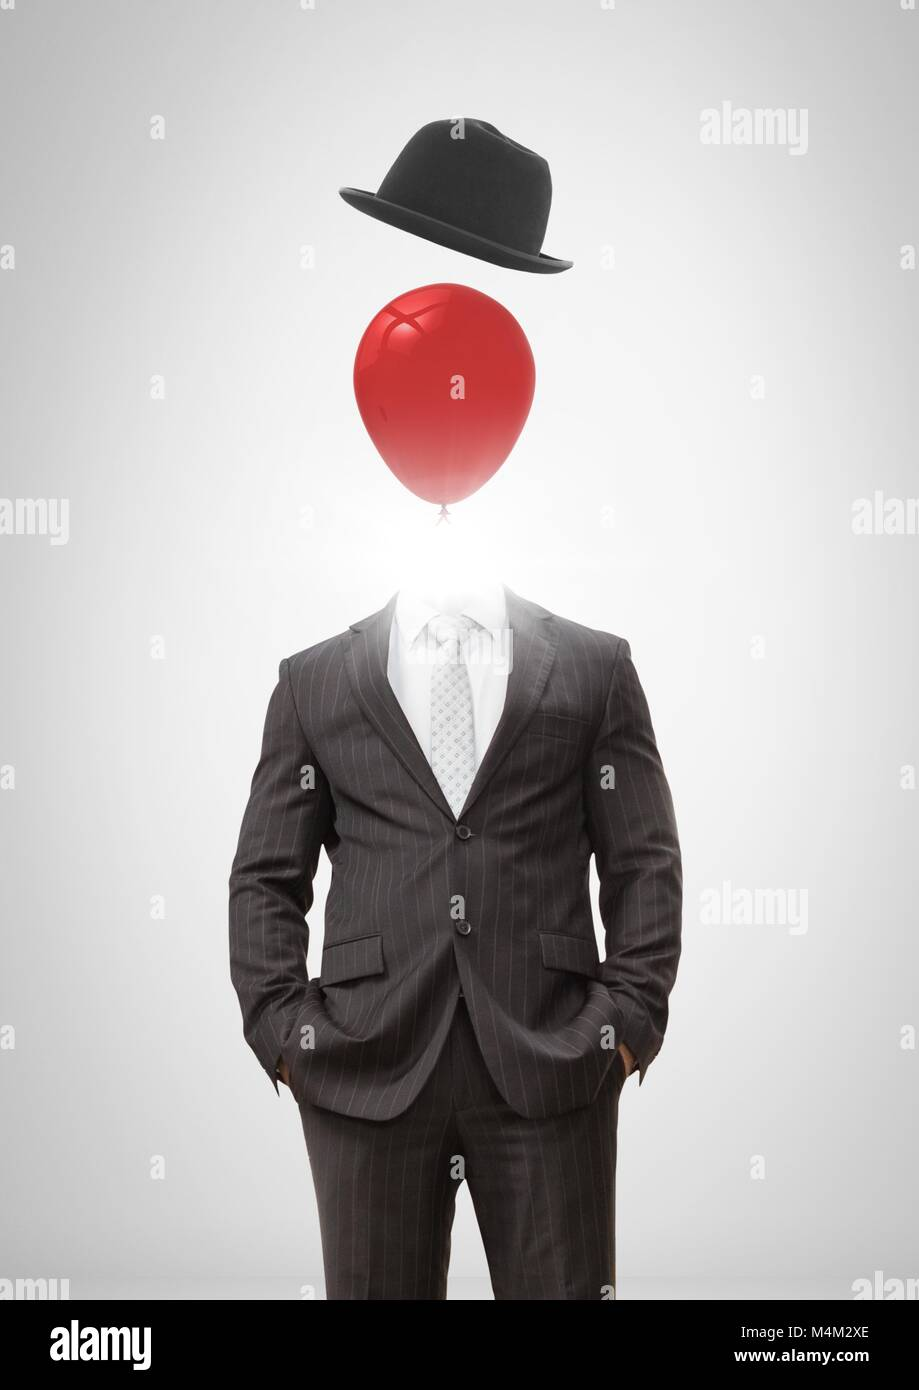 Headless man with surreal floating hat and balloon - Stock Image